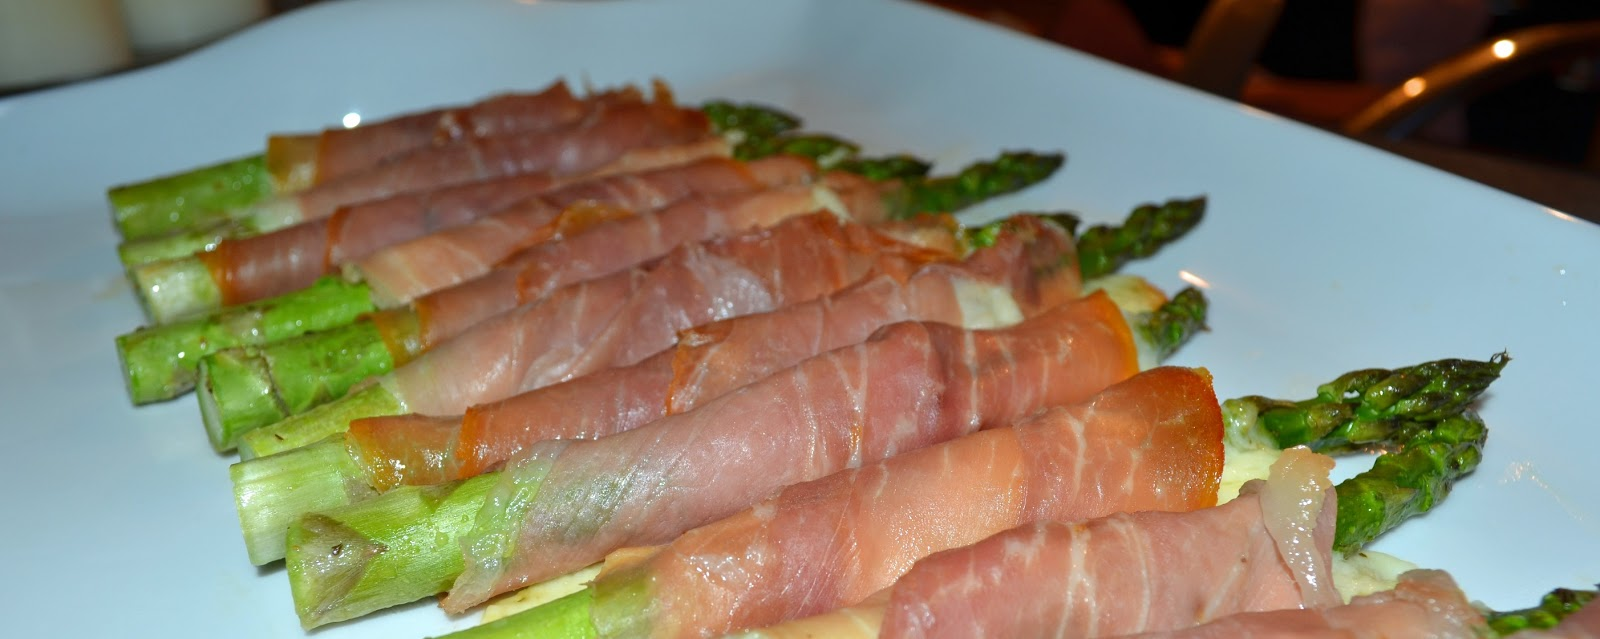 recipe: prosciutto and provolone appetizer [25]